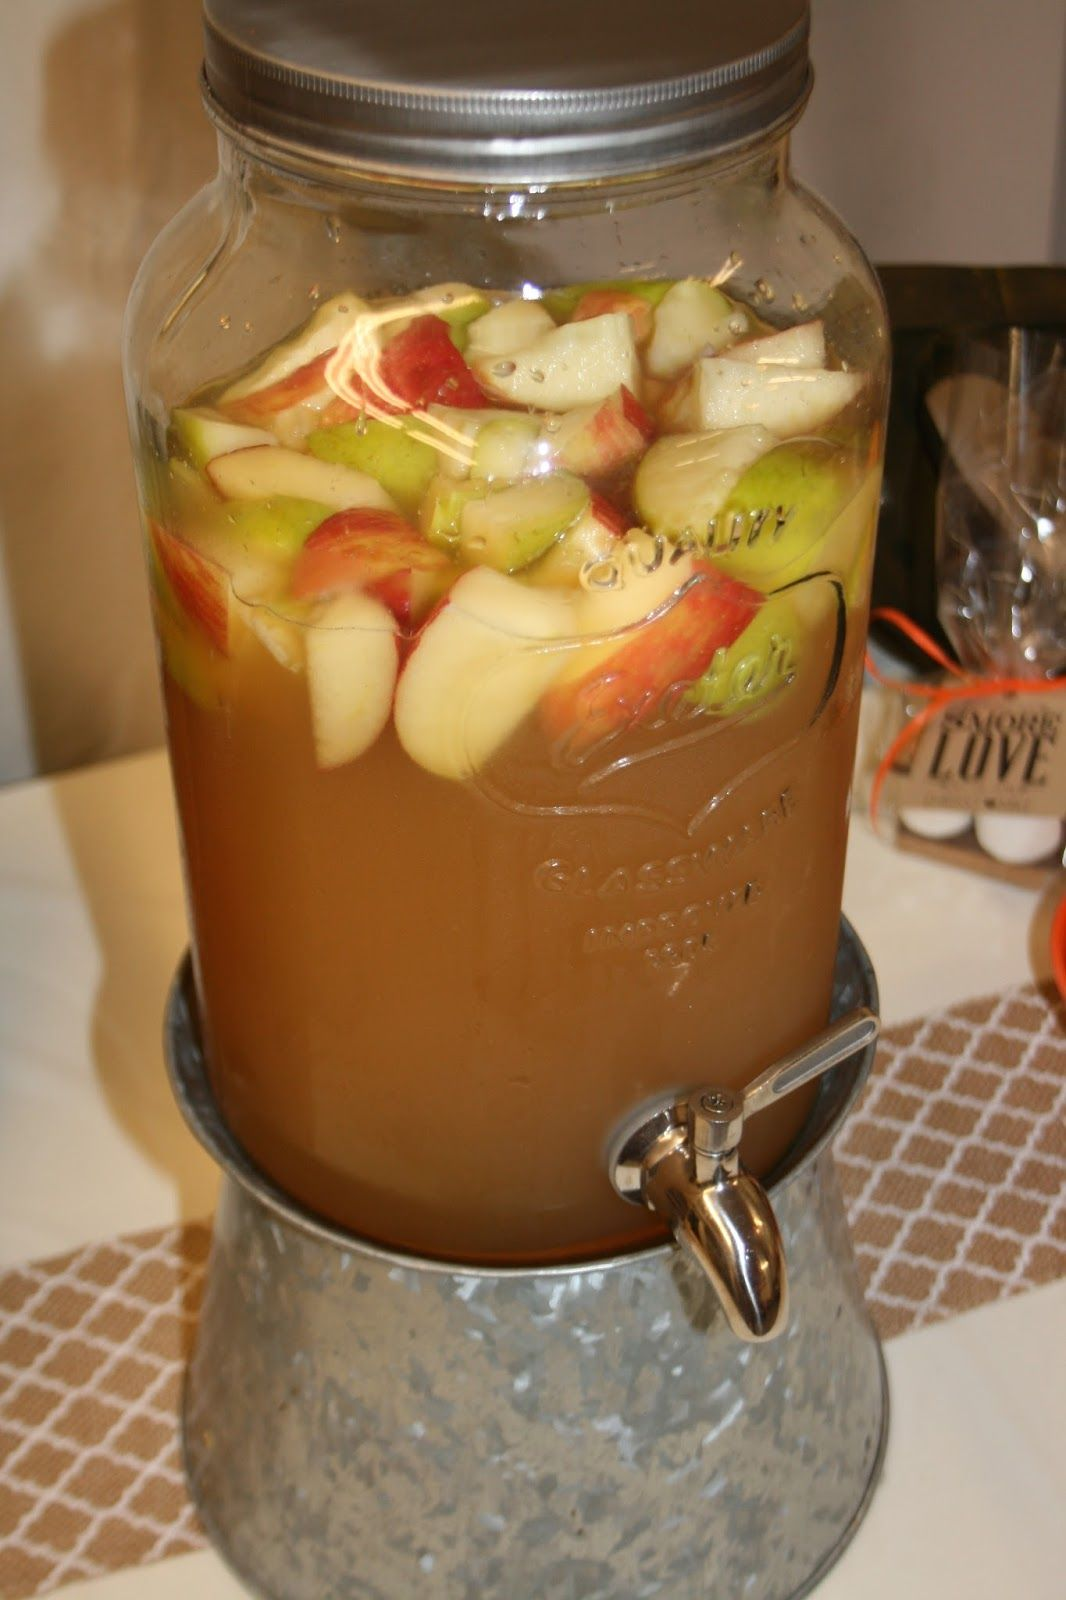 SIMPLE FOUND TREASURES: Falling in Love Engagement Party // Carmel Apple Sangria #engagementparty